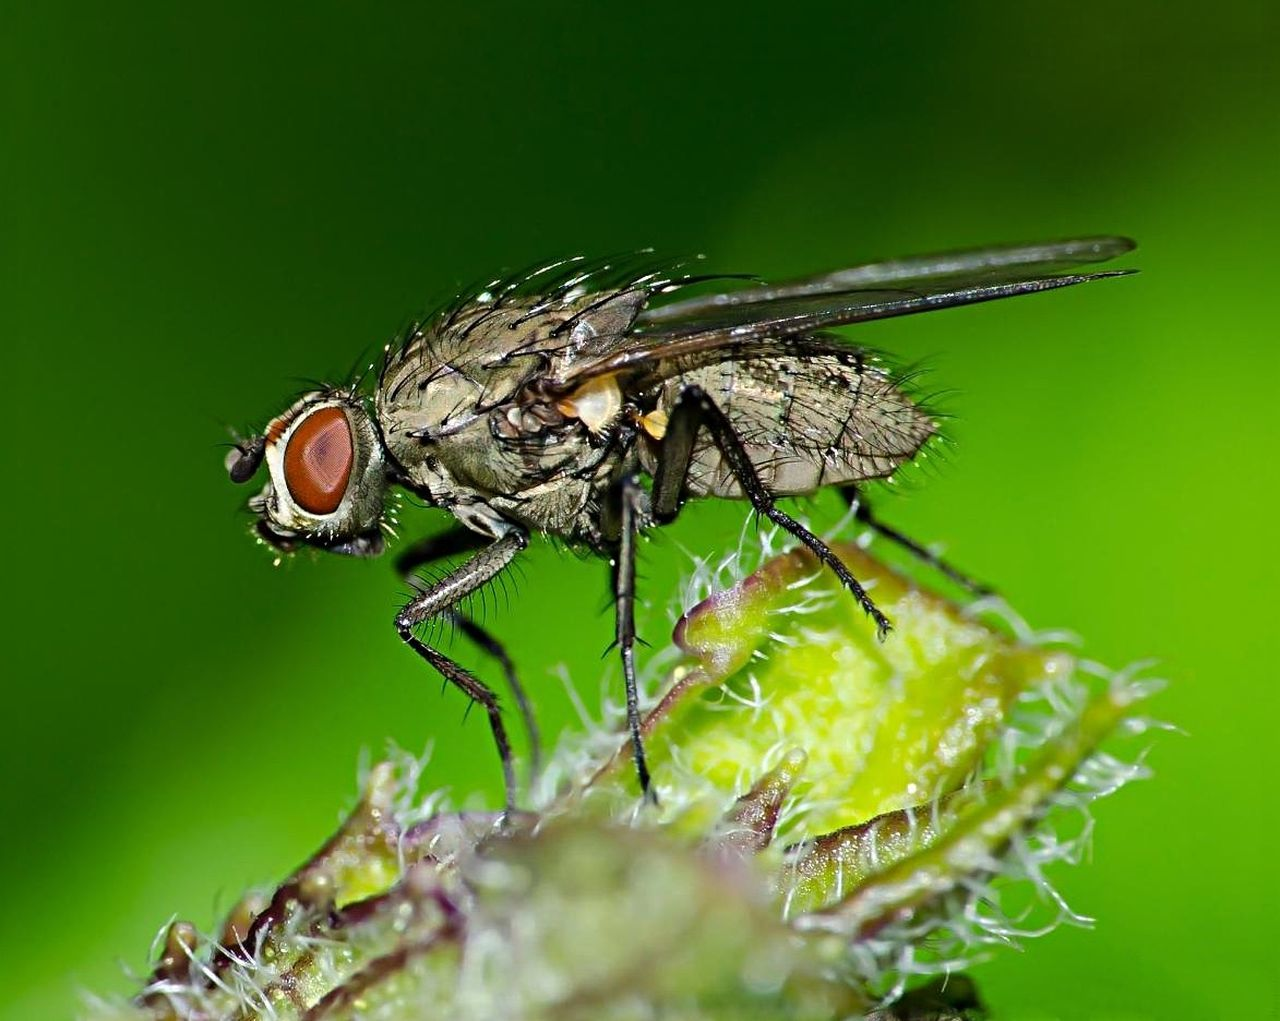 Close-Up Of Housefly On Leaf